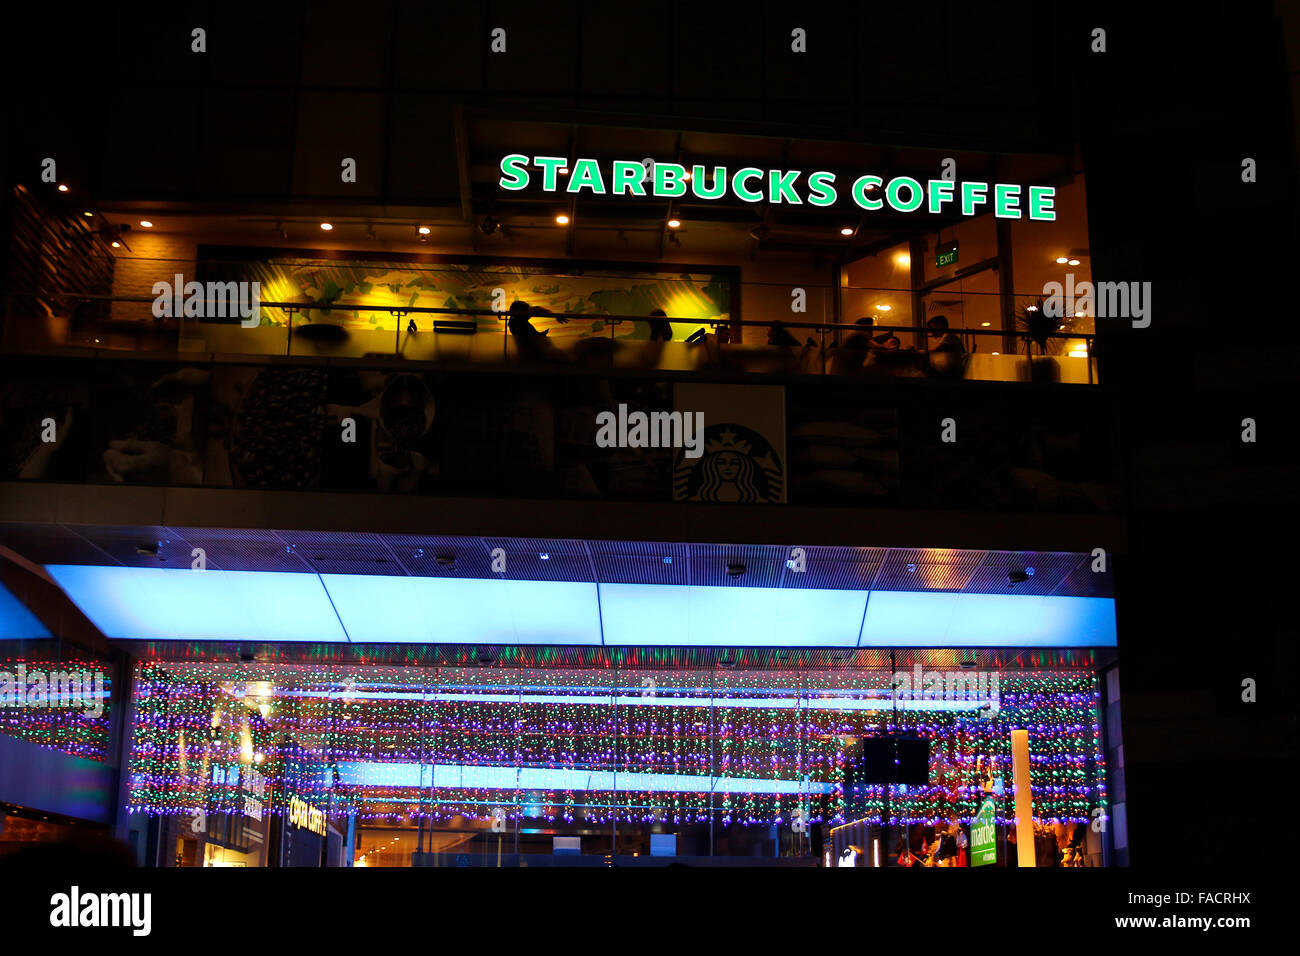 Starbucks Coffeehouse - Stock Image